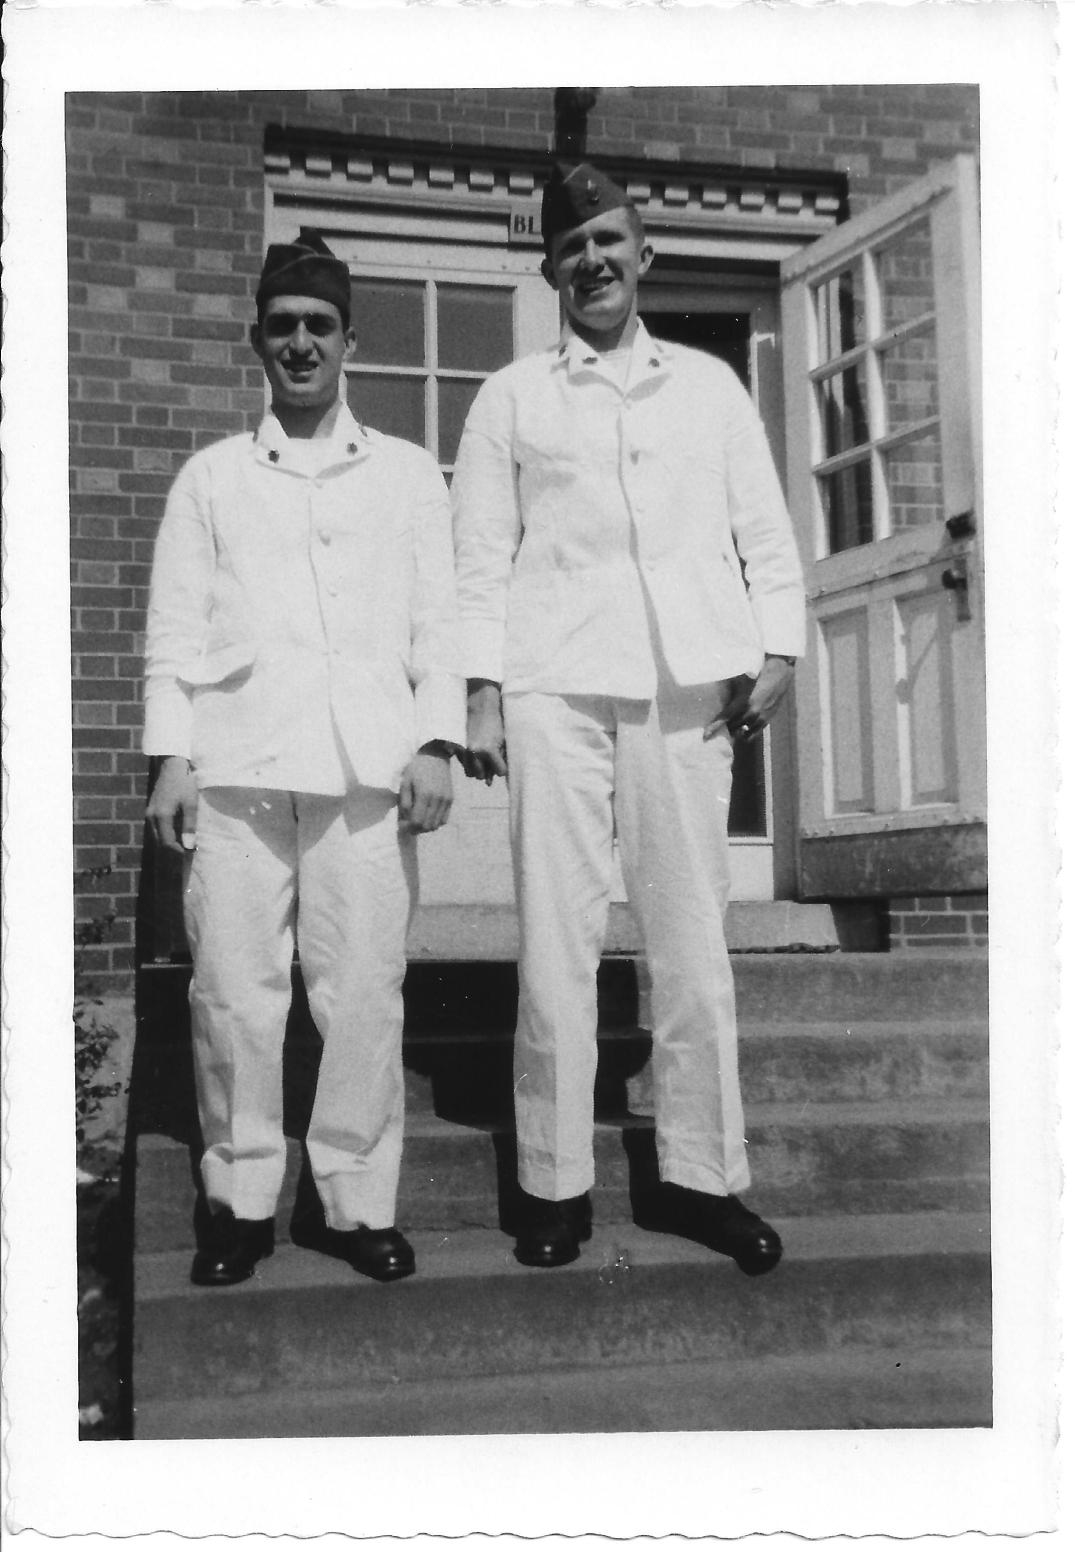 48 MASH Chuck Mazzone and Carl Olsen at Walter Reed, May 1953